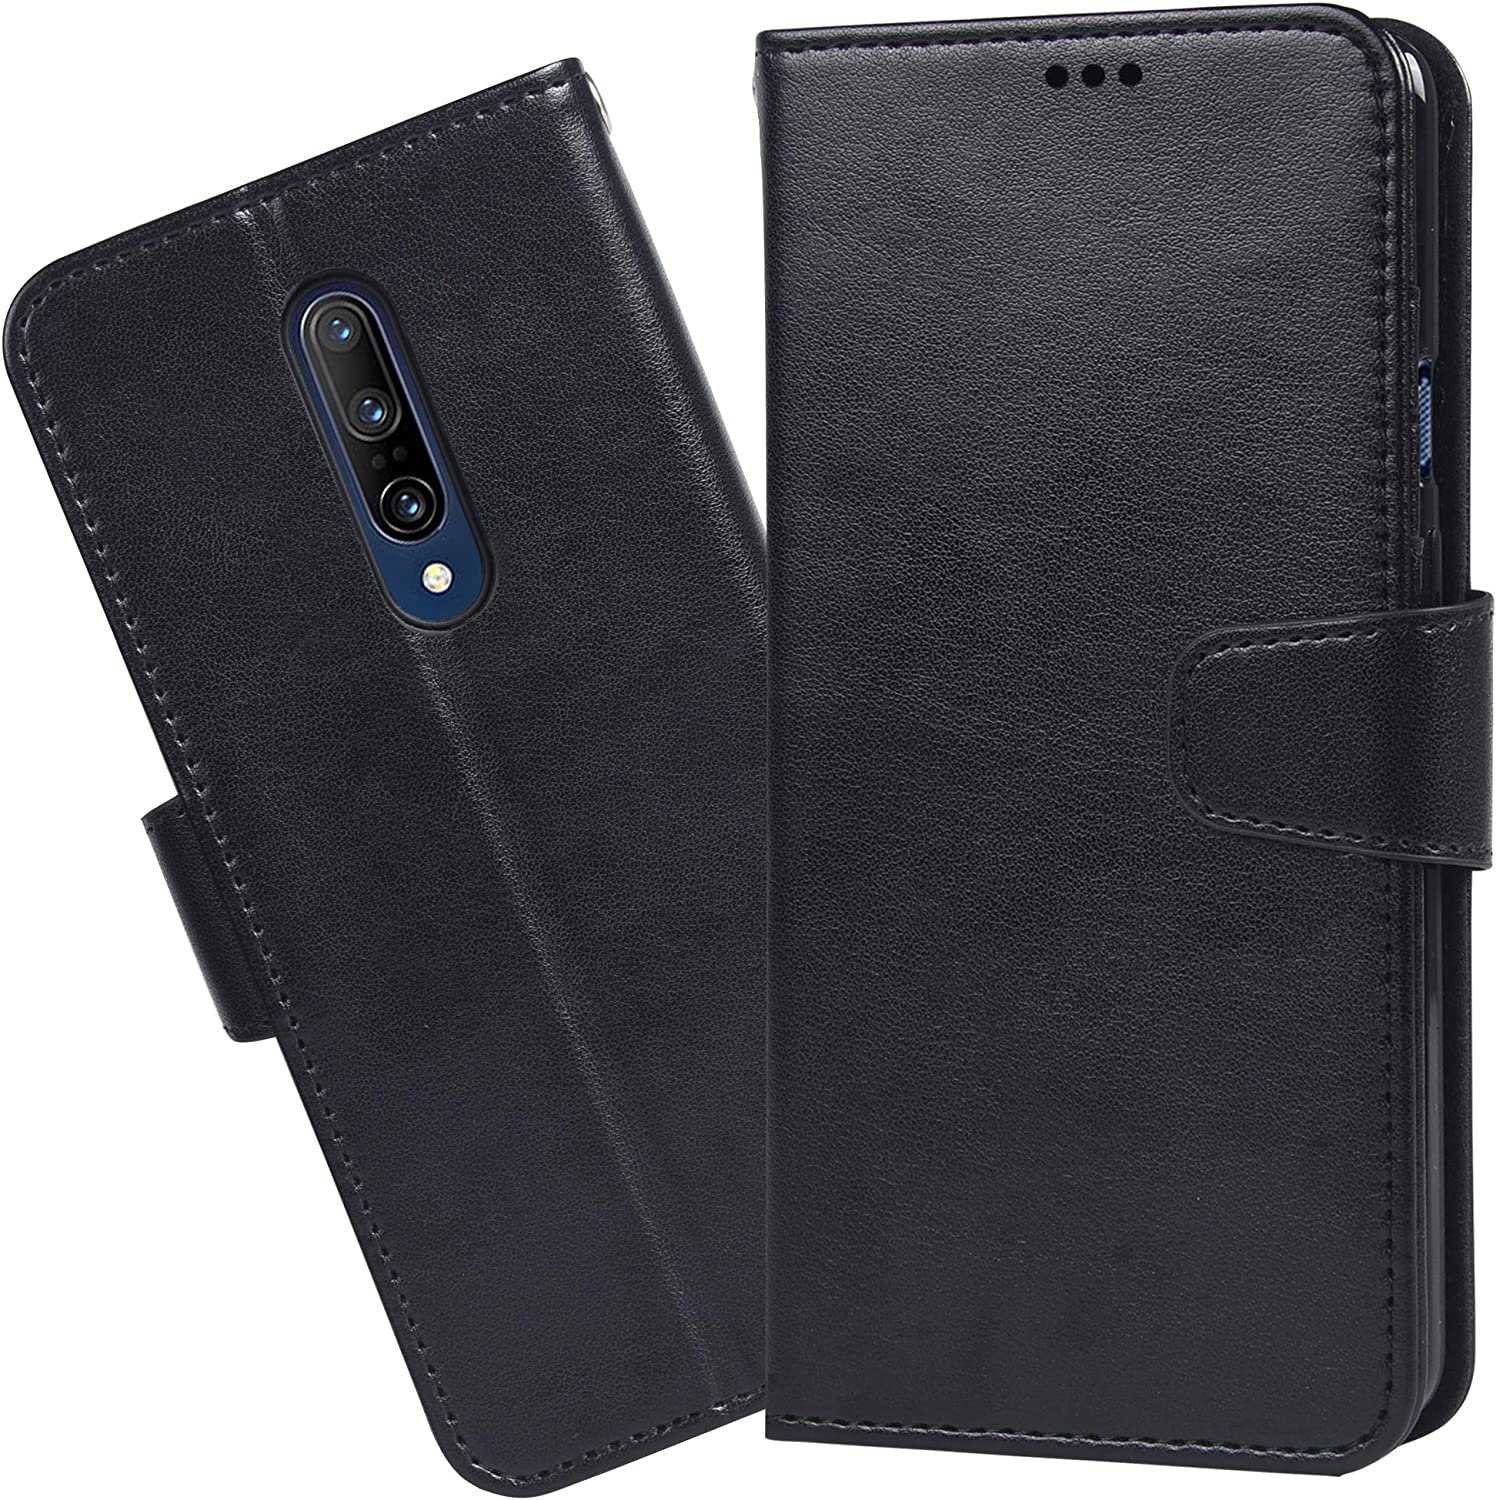 Black Arae PU Leather Wallet case for OnePlus 7 Pro with Wrist Strap and ID/&Credit Cards Pocket OnePlus 7 Pro Case